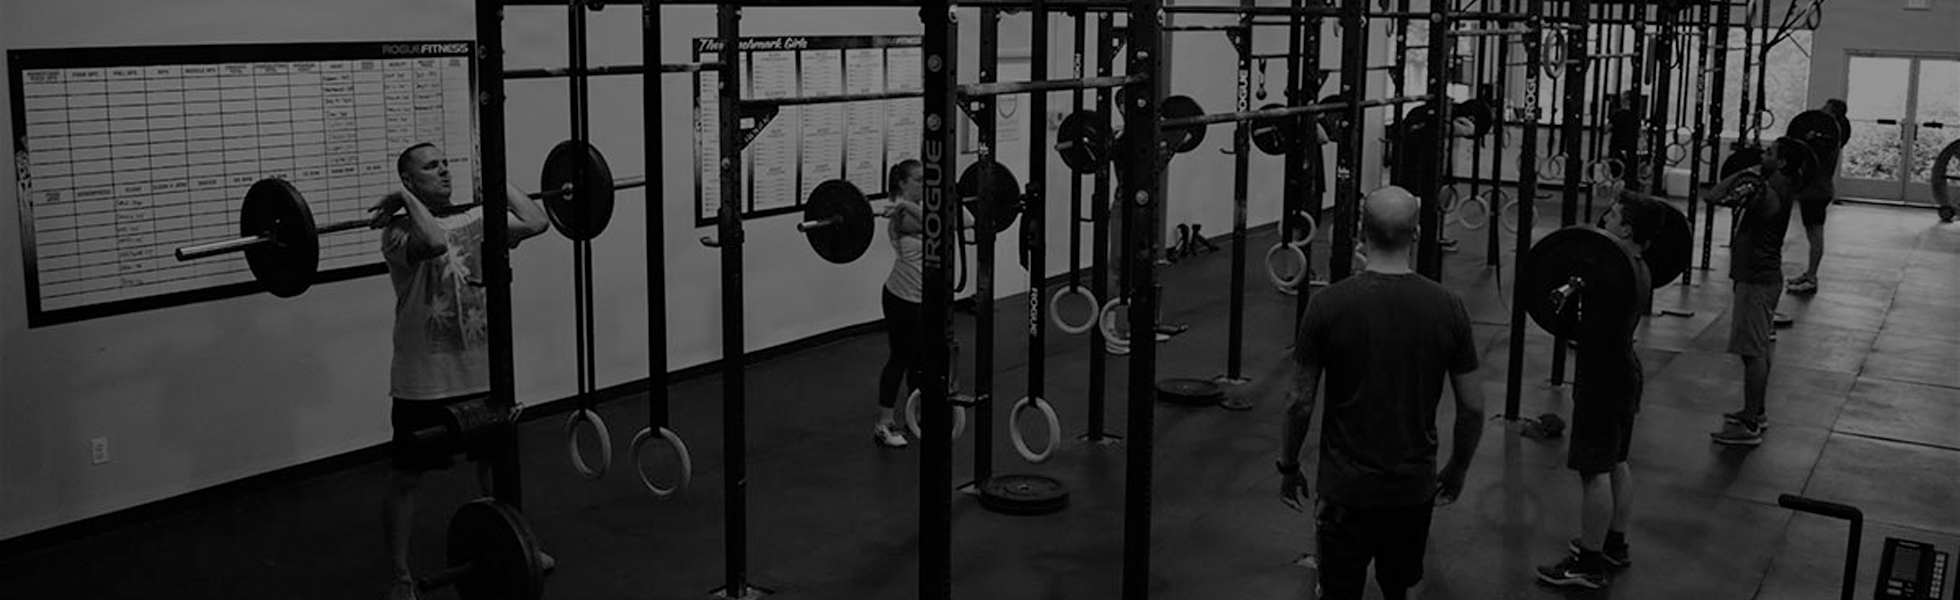 Get Started with ASDC CrossFit in Flemington, NJ